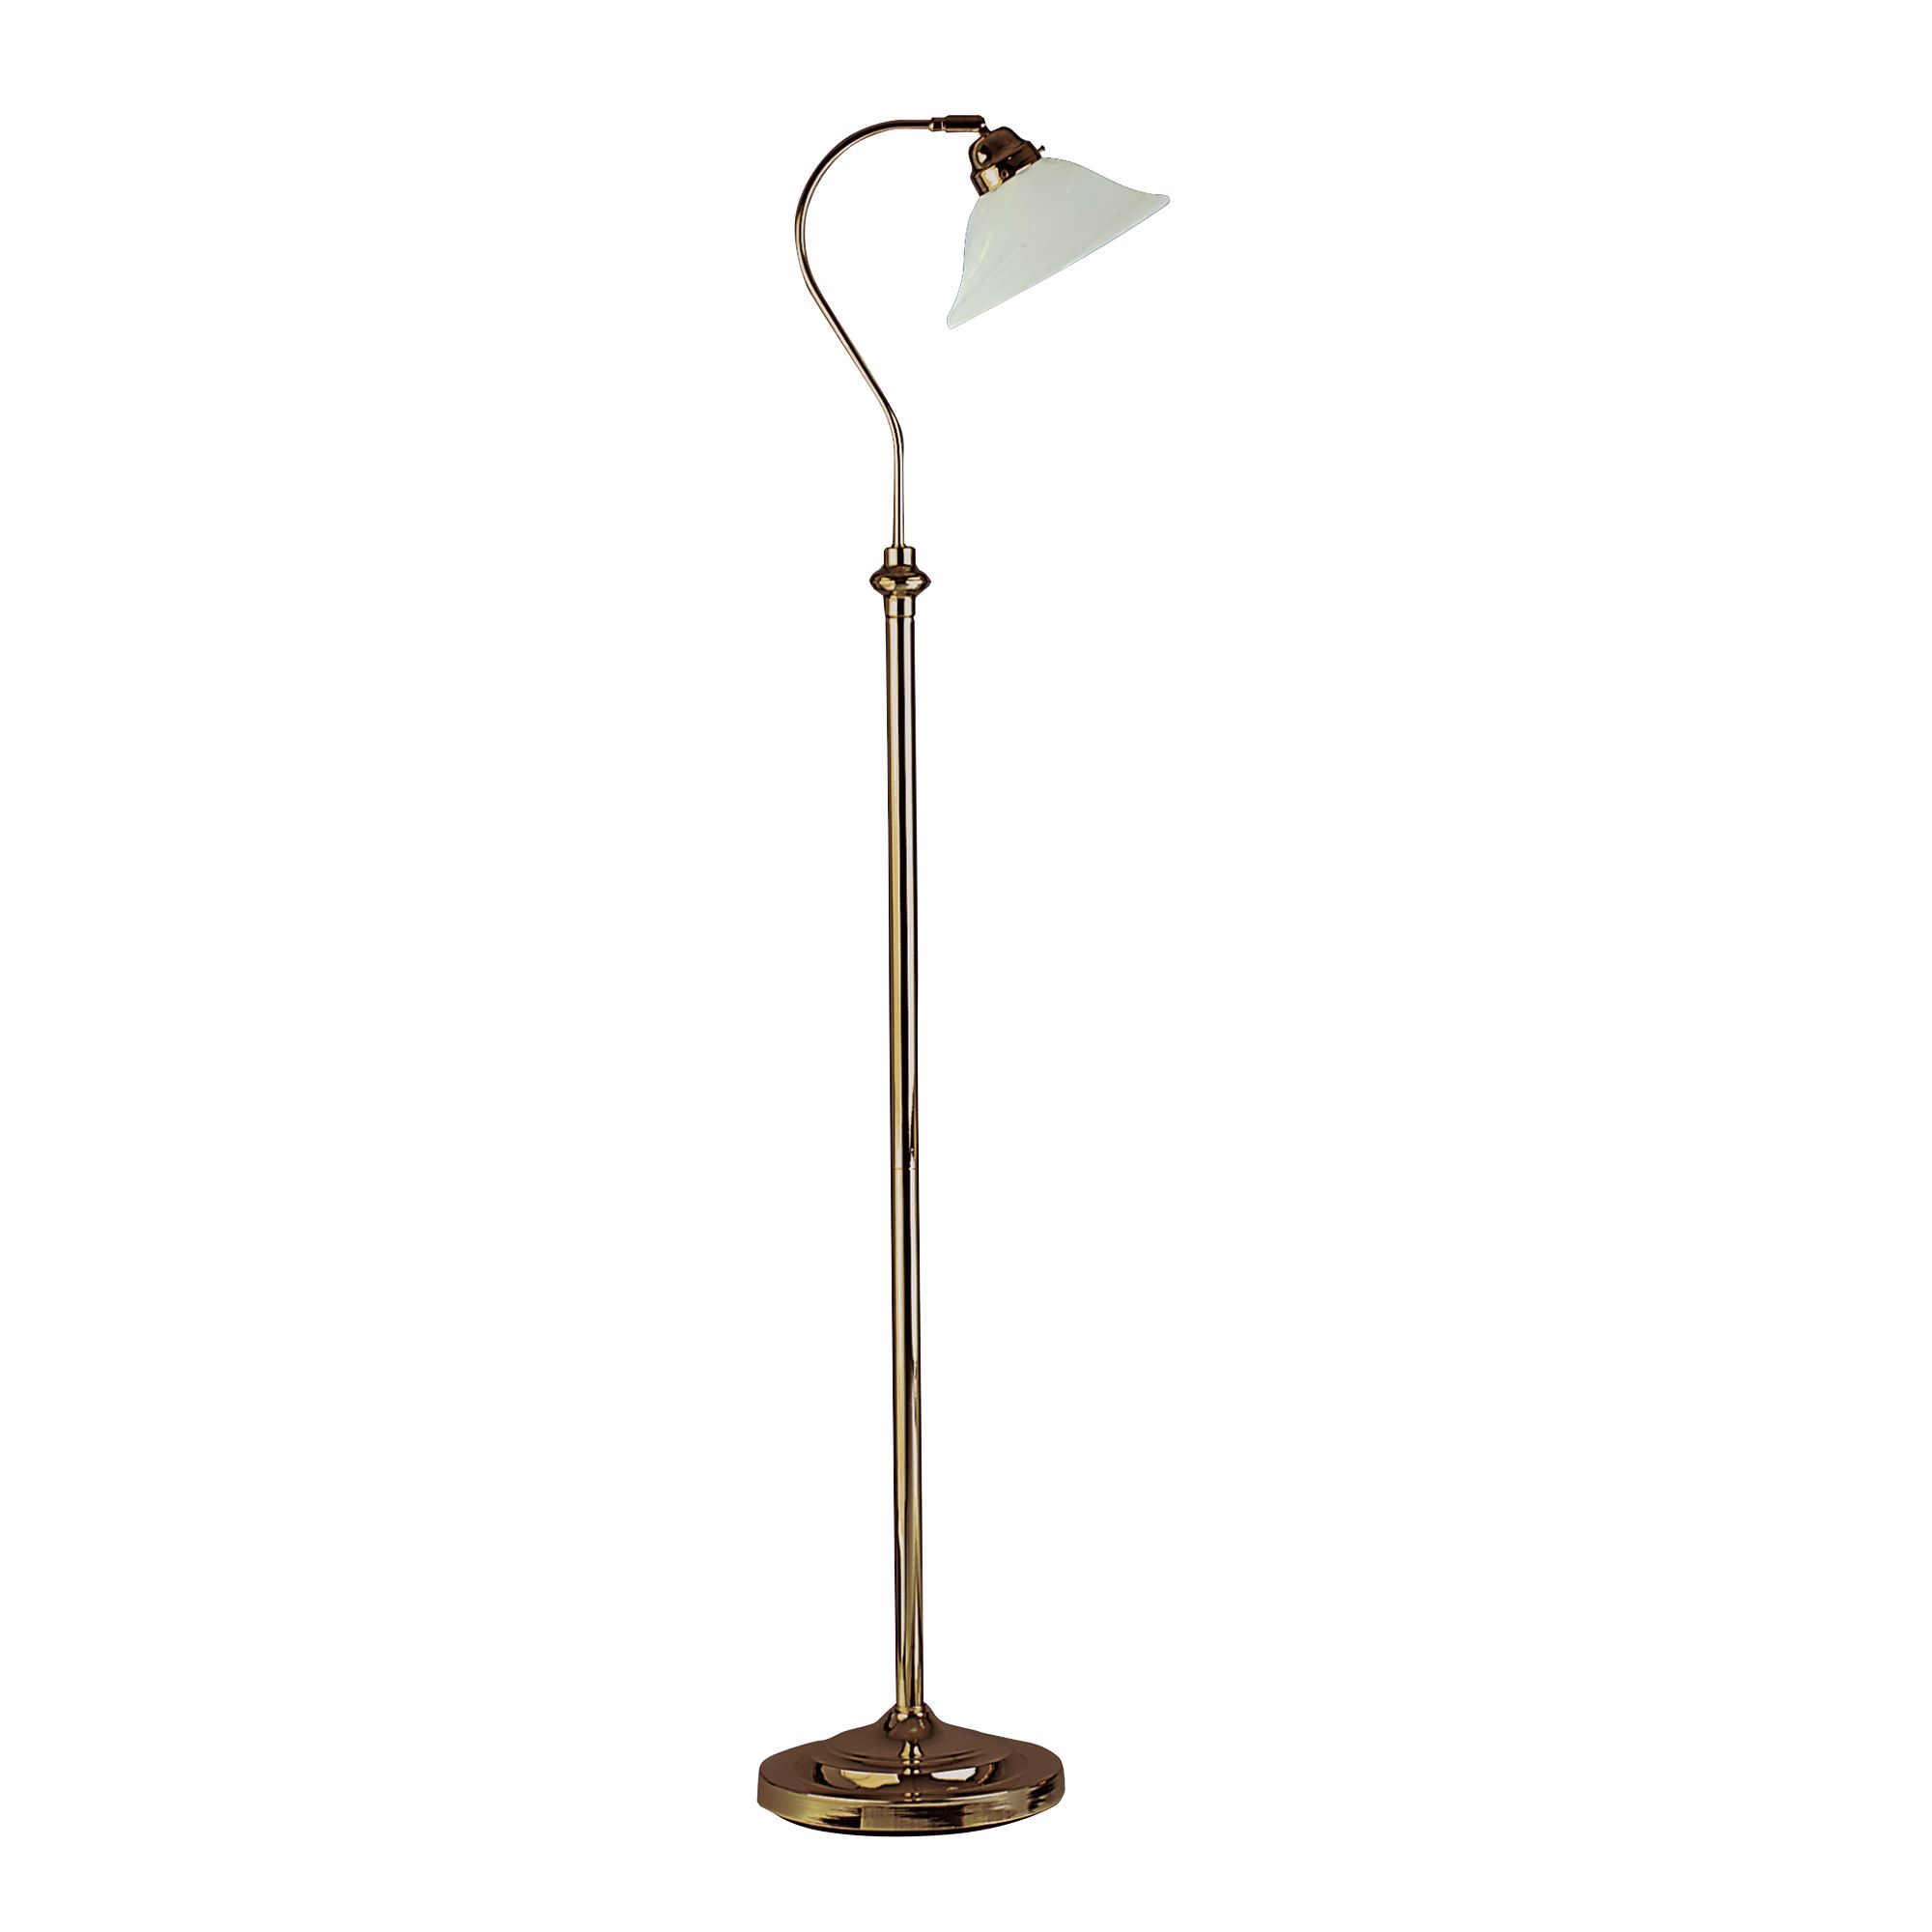 Antique Brass Adjustable Floor Lamp With Marble Glass Shade